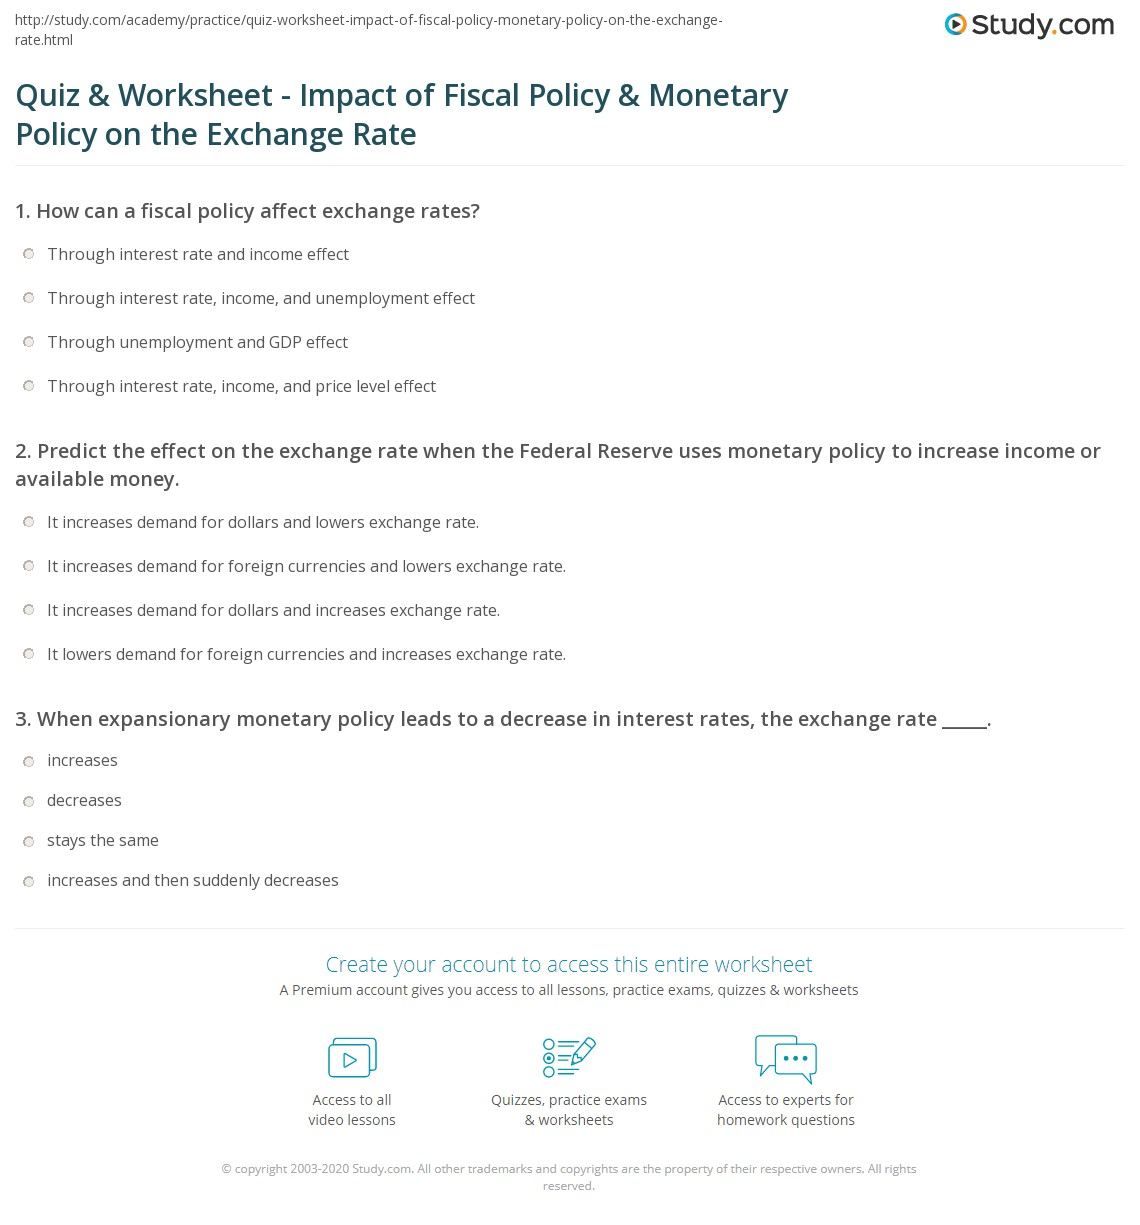 Uncategorized Predicting Outcomes Worksheets quiz worksheet impact of fiscal policy monetary on print how and policies affect the exchange rate worksheet